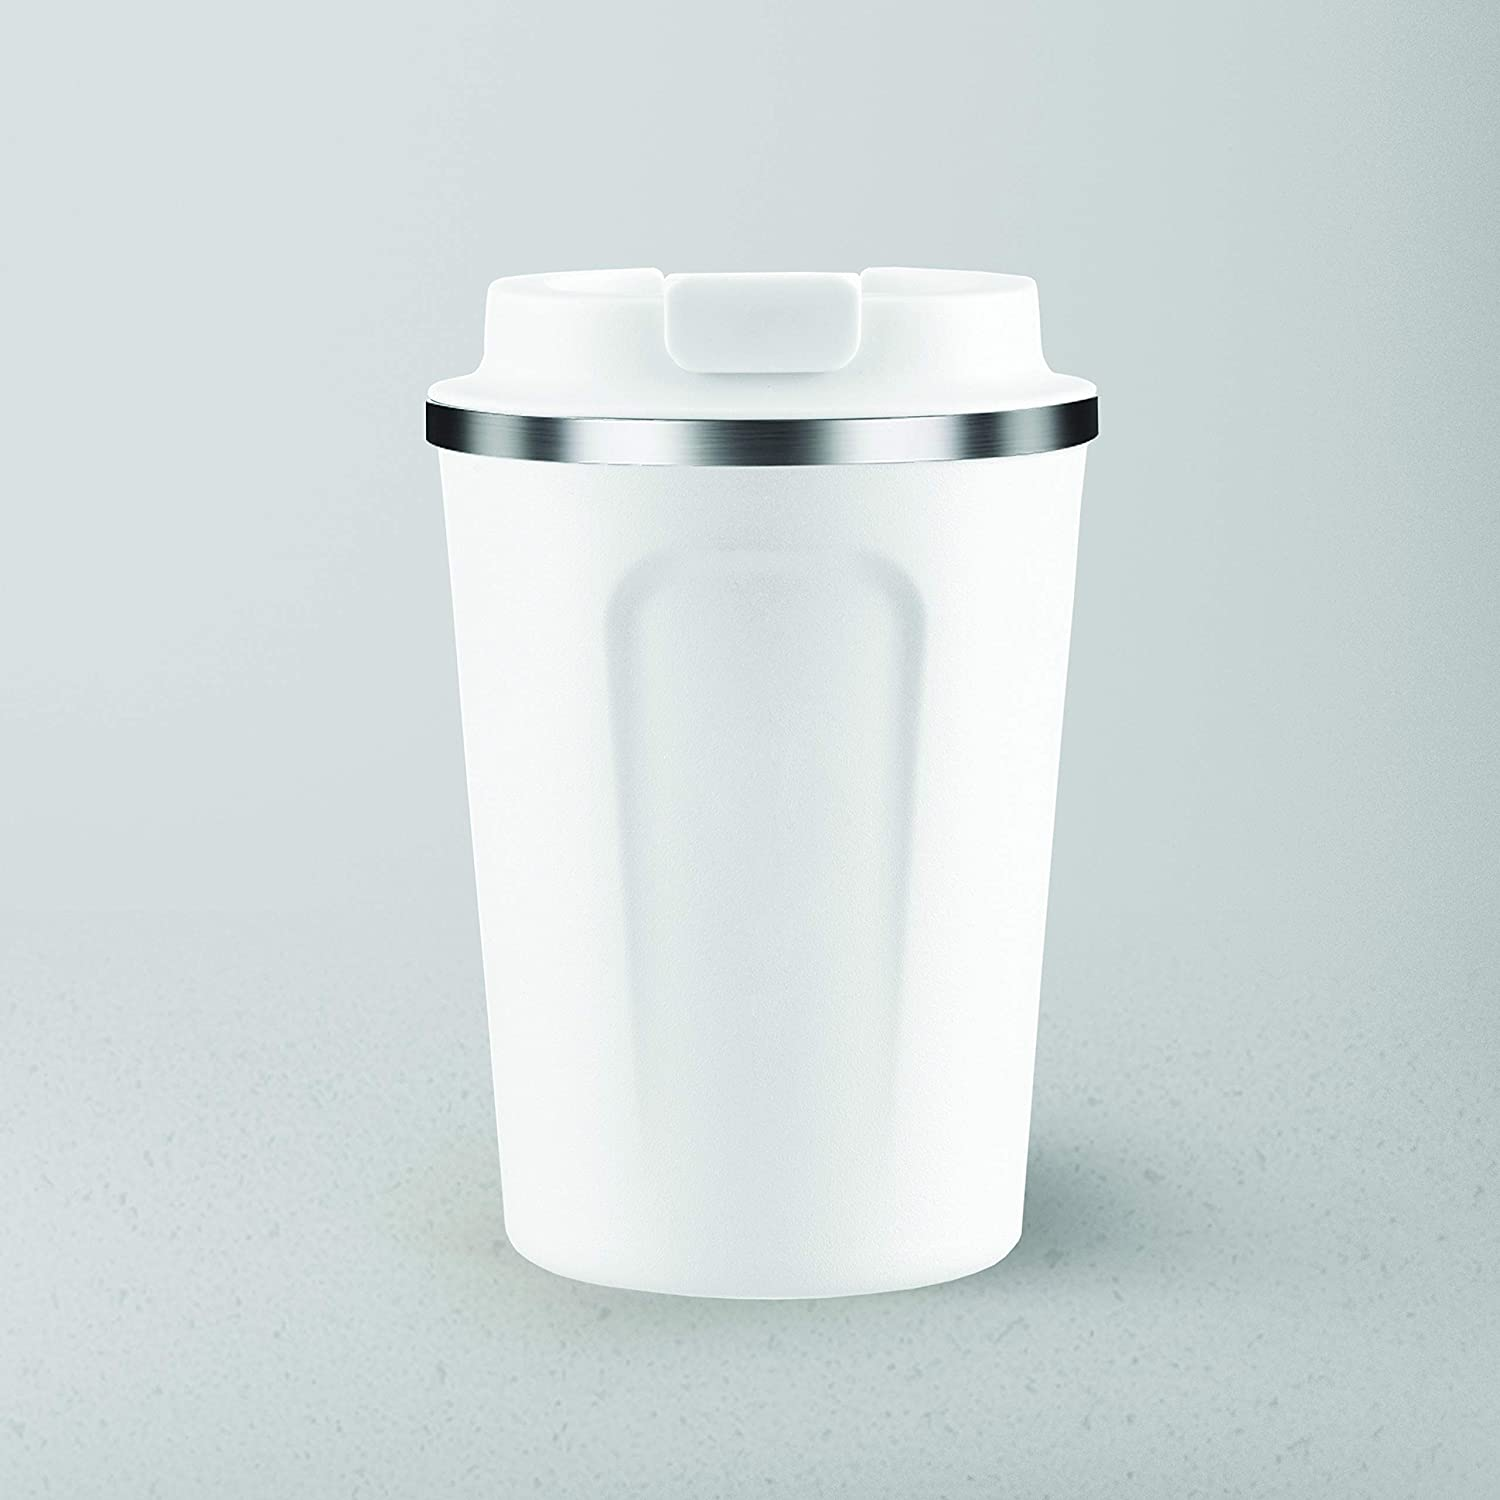 Asobu Coffee Compact Vacuum Insulated Travel Mug With Spill Proof Lid 13 ounce (White)